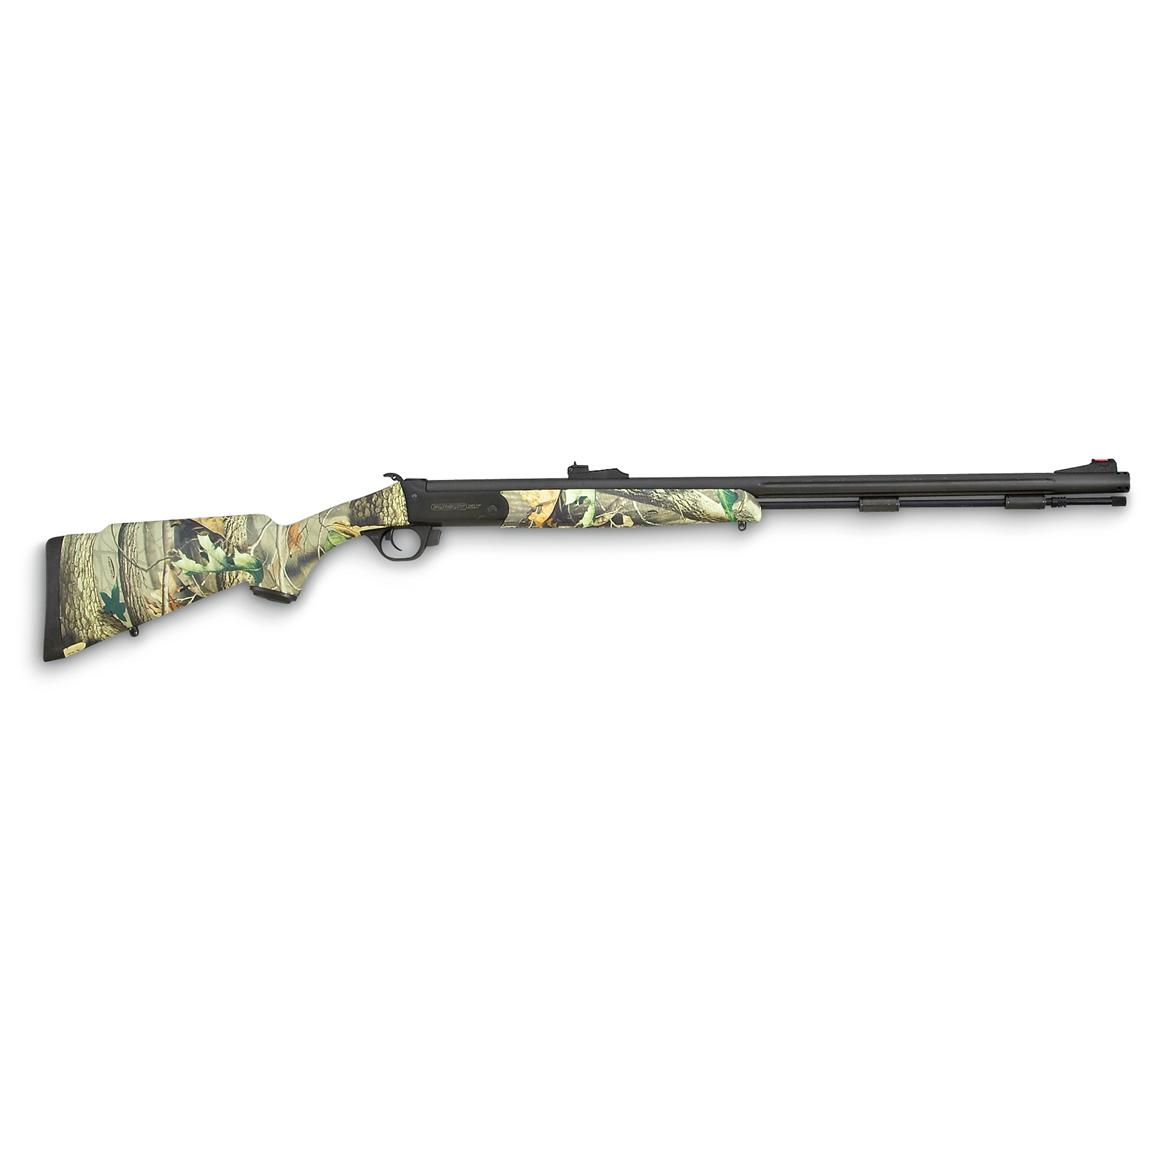 Traditions Pursuit Xlt 45 Cal Black Powder Rifle With